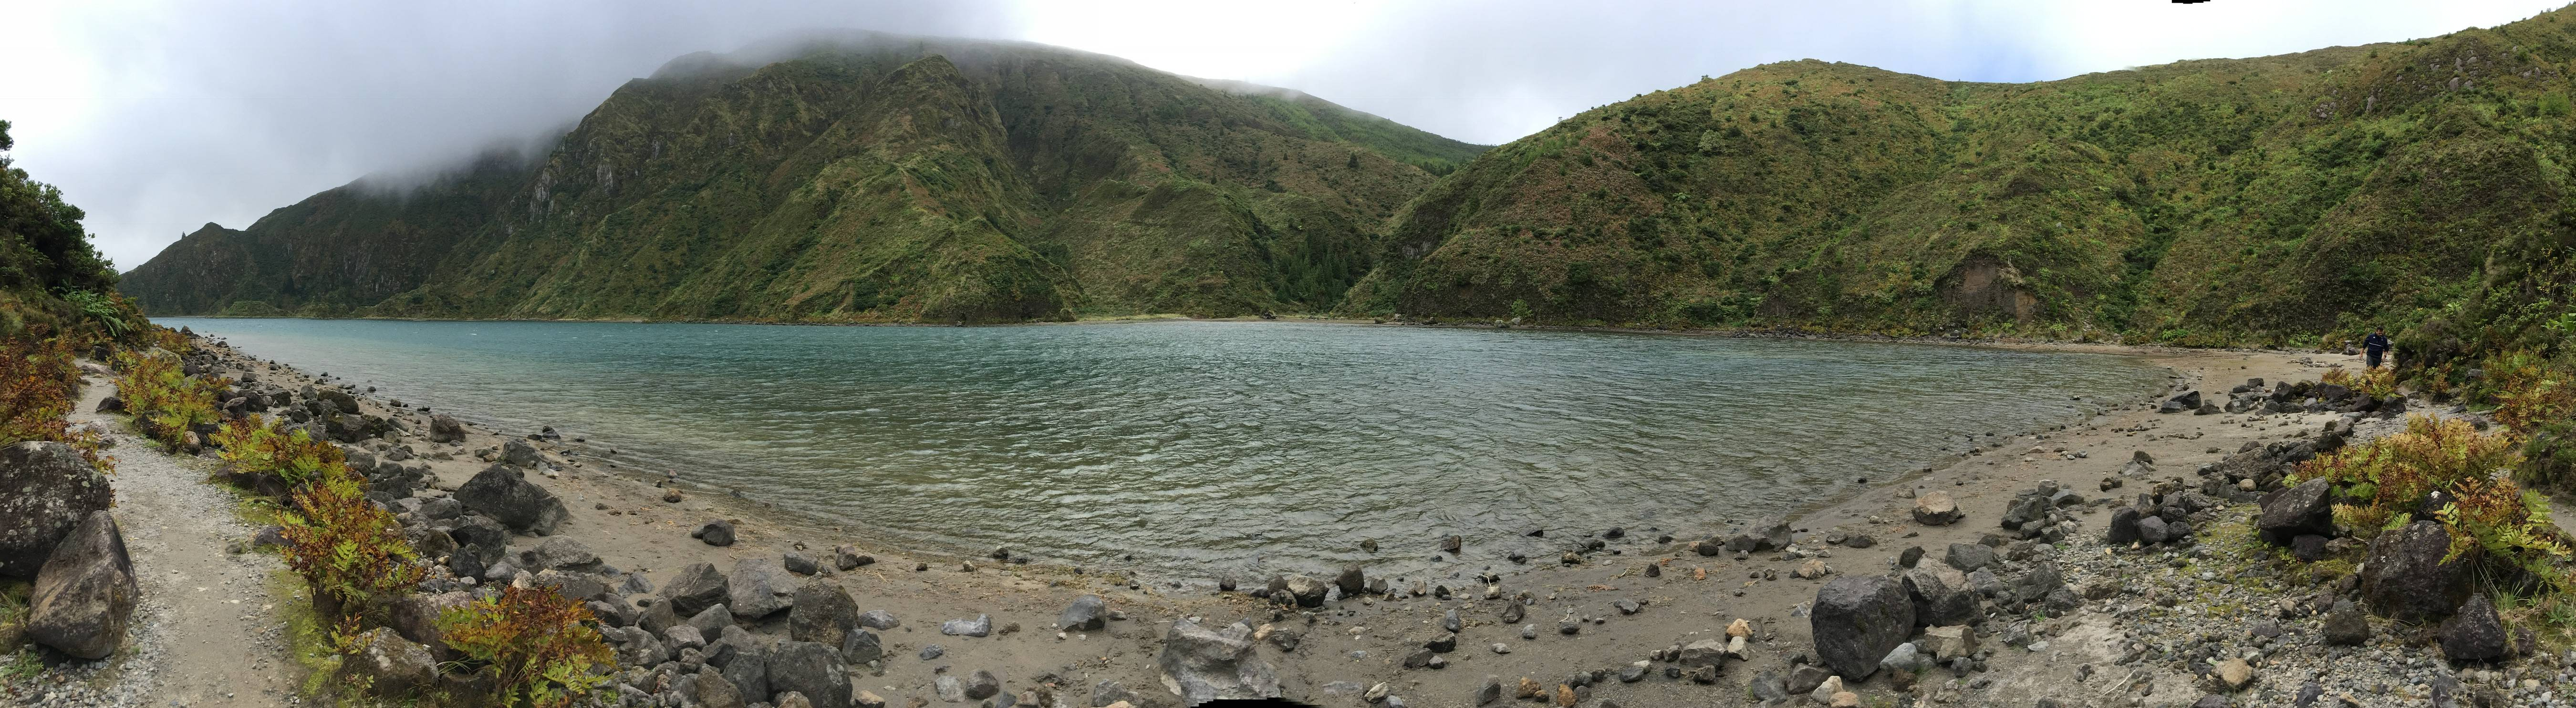 Photo 2: Lagoa Do Fogo, acores